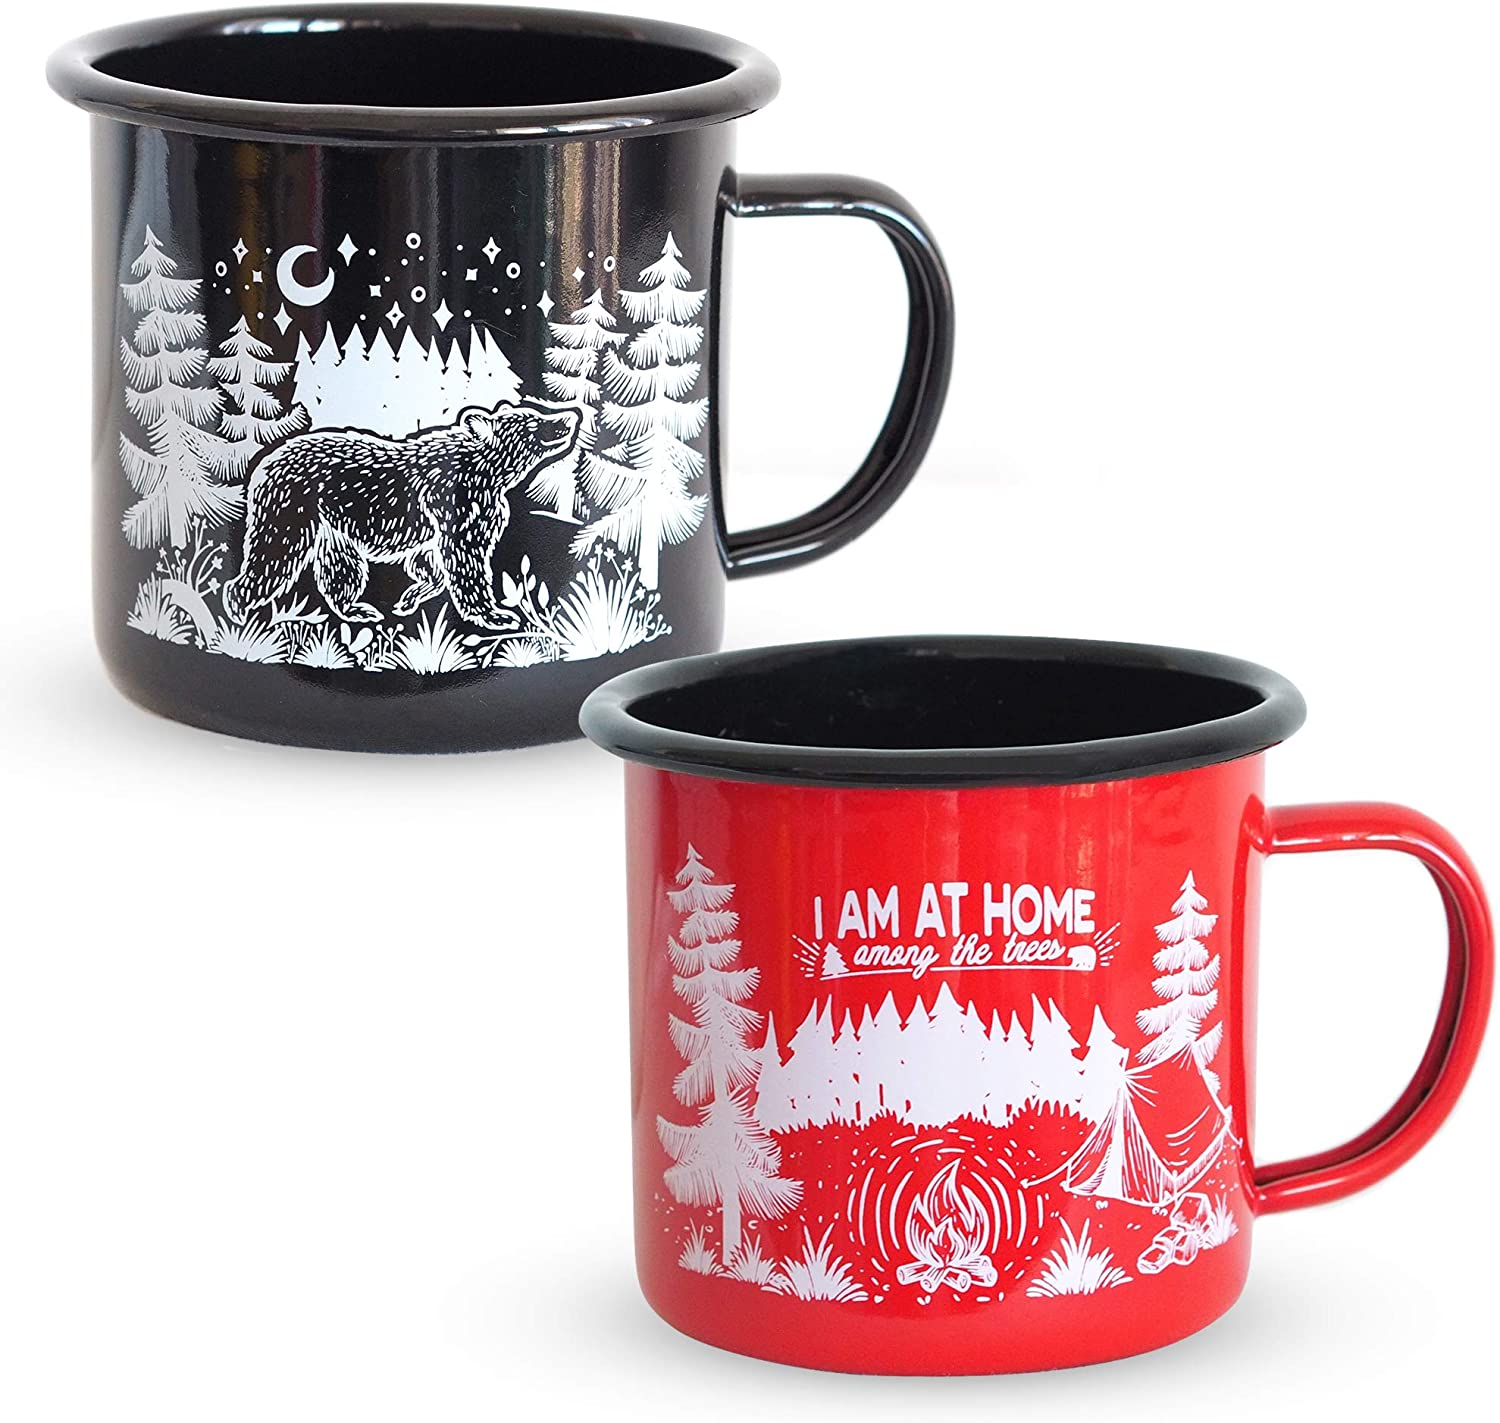 Enamel Mugs - Great as Tea Cup, Coffee Mug or Soup mug - Amazing for Coffee Gifts or Trailer Accessories - our Travel Mugs are Great for Vintage Kitchen Decor and Accessories -16 oz Coffee Mugs 2PCS